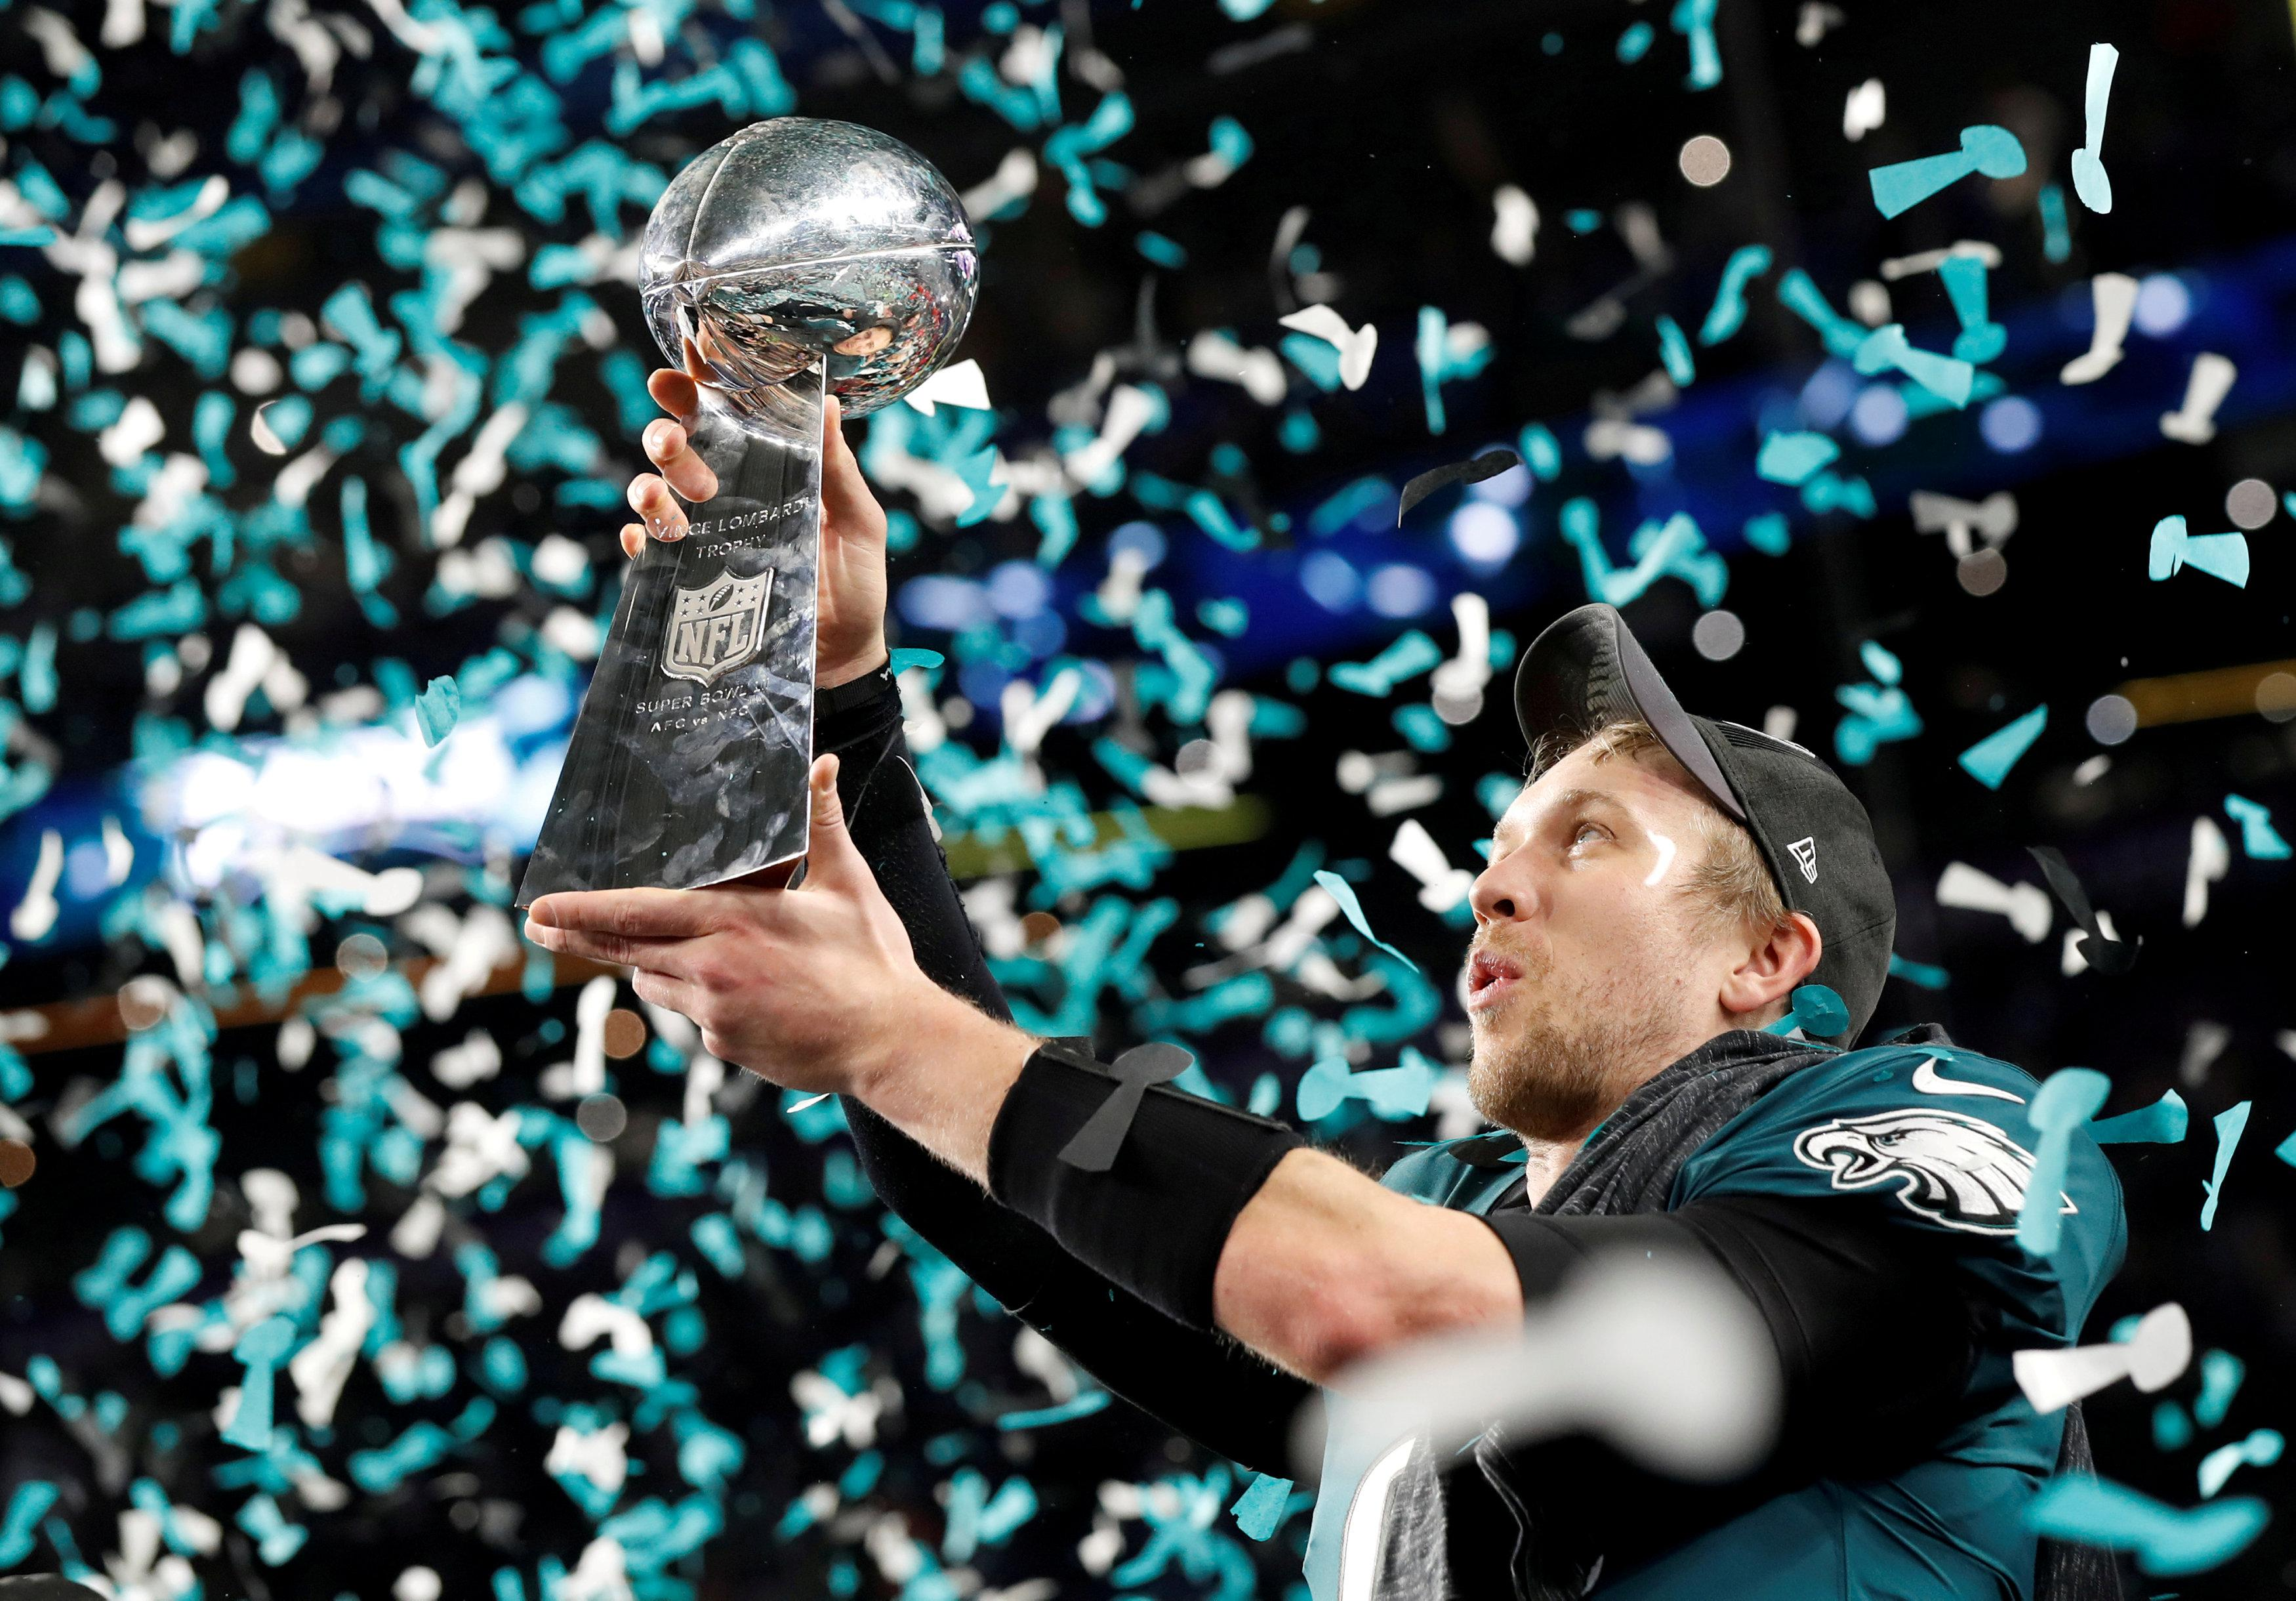 The Eagles are looking to retain the Vince Lombardi Trophy after beating New England Patriots last year